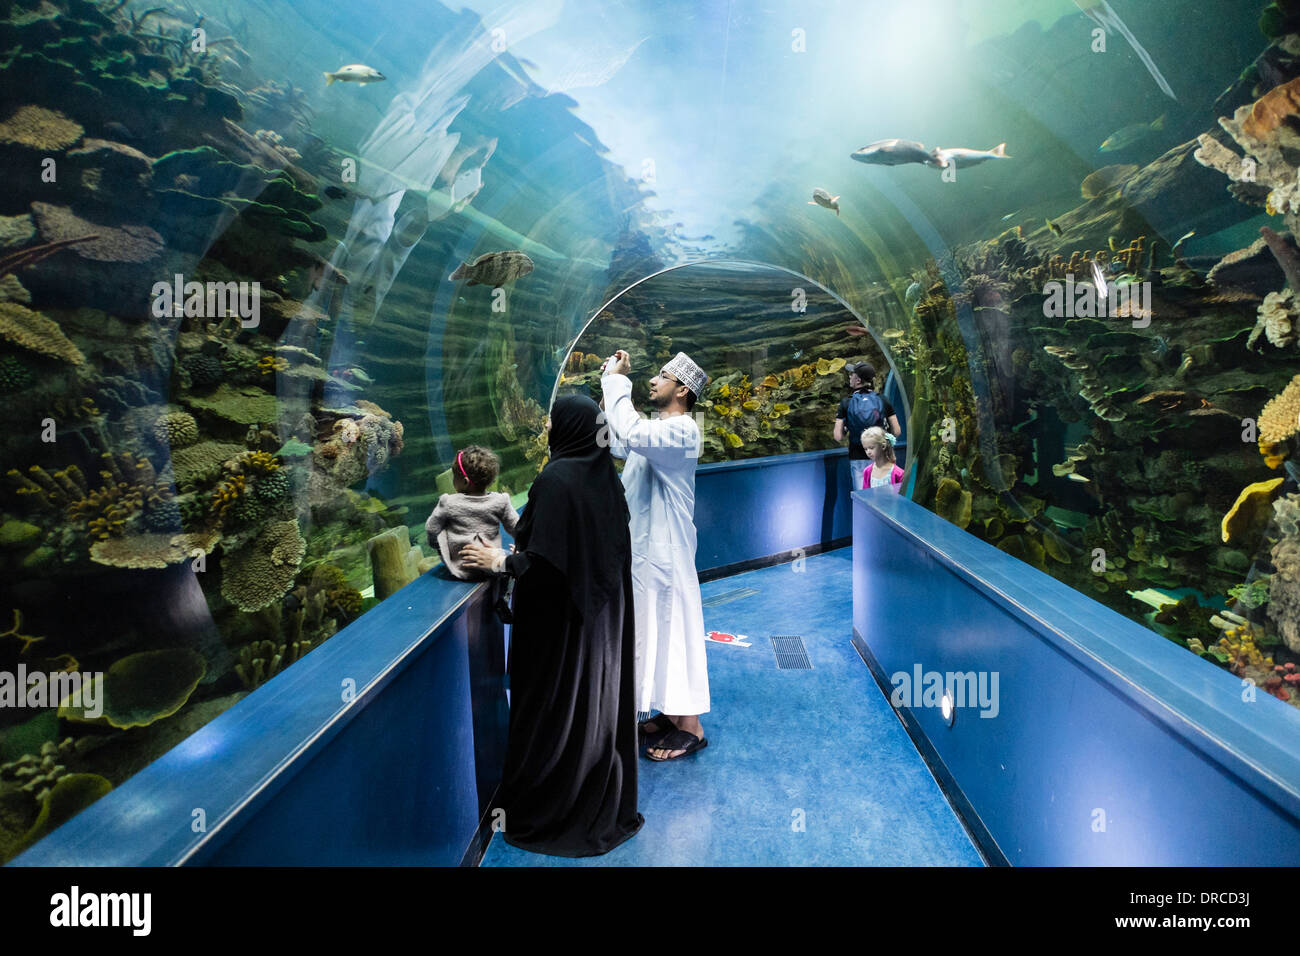 Aquarium in Sharjah in United Arab Emirates - Stock Image